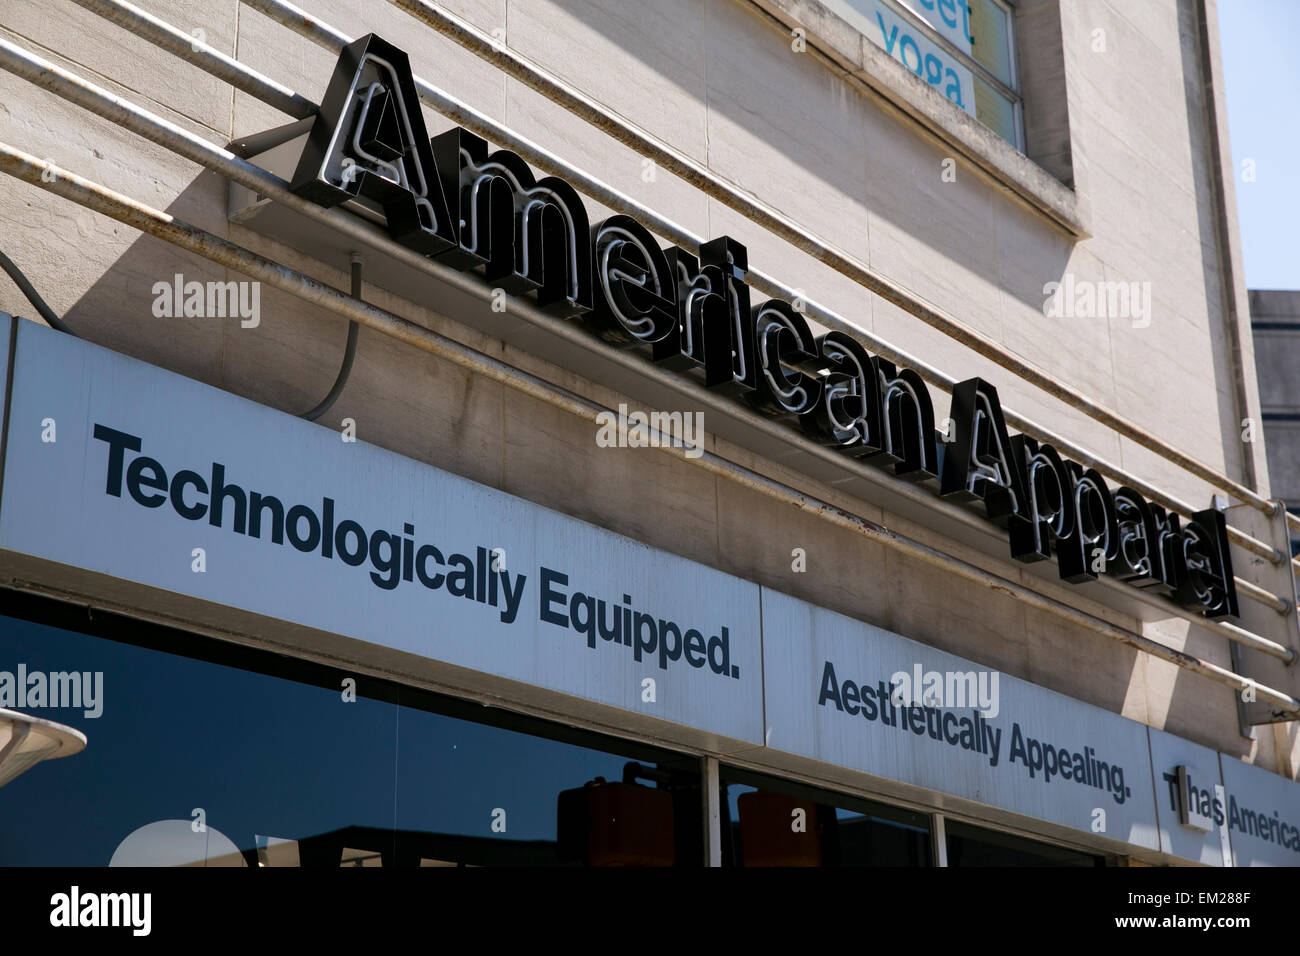 An exterior view of an American Apparel clothing retail store in Silver Spring, Maryland. - Stock Image